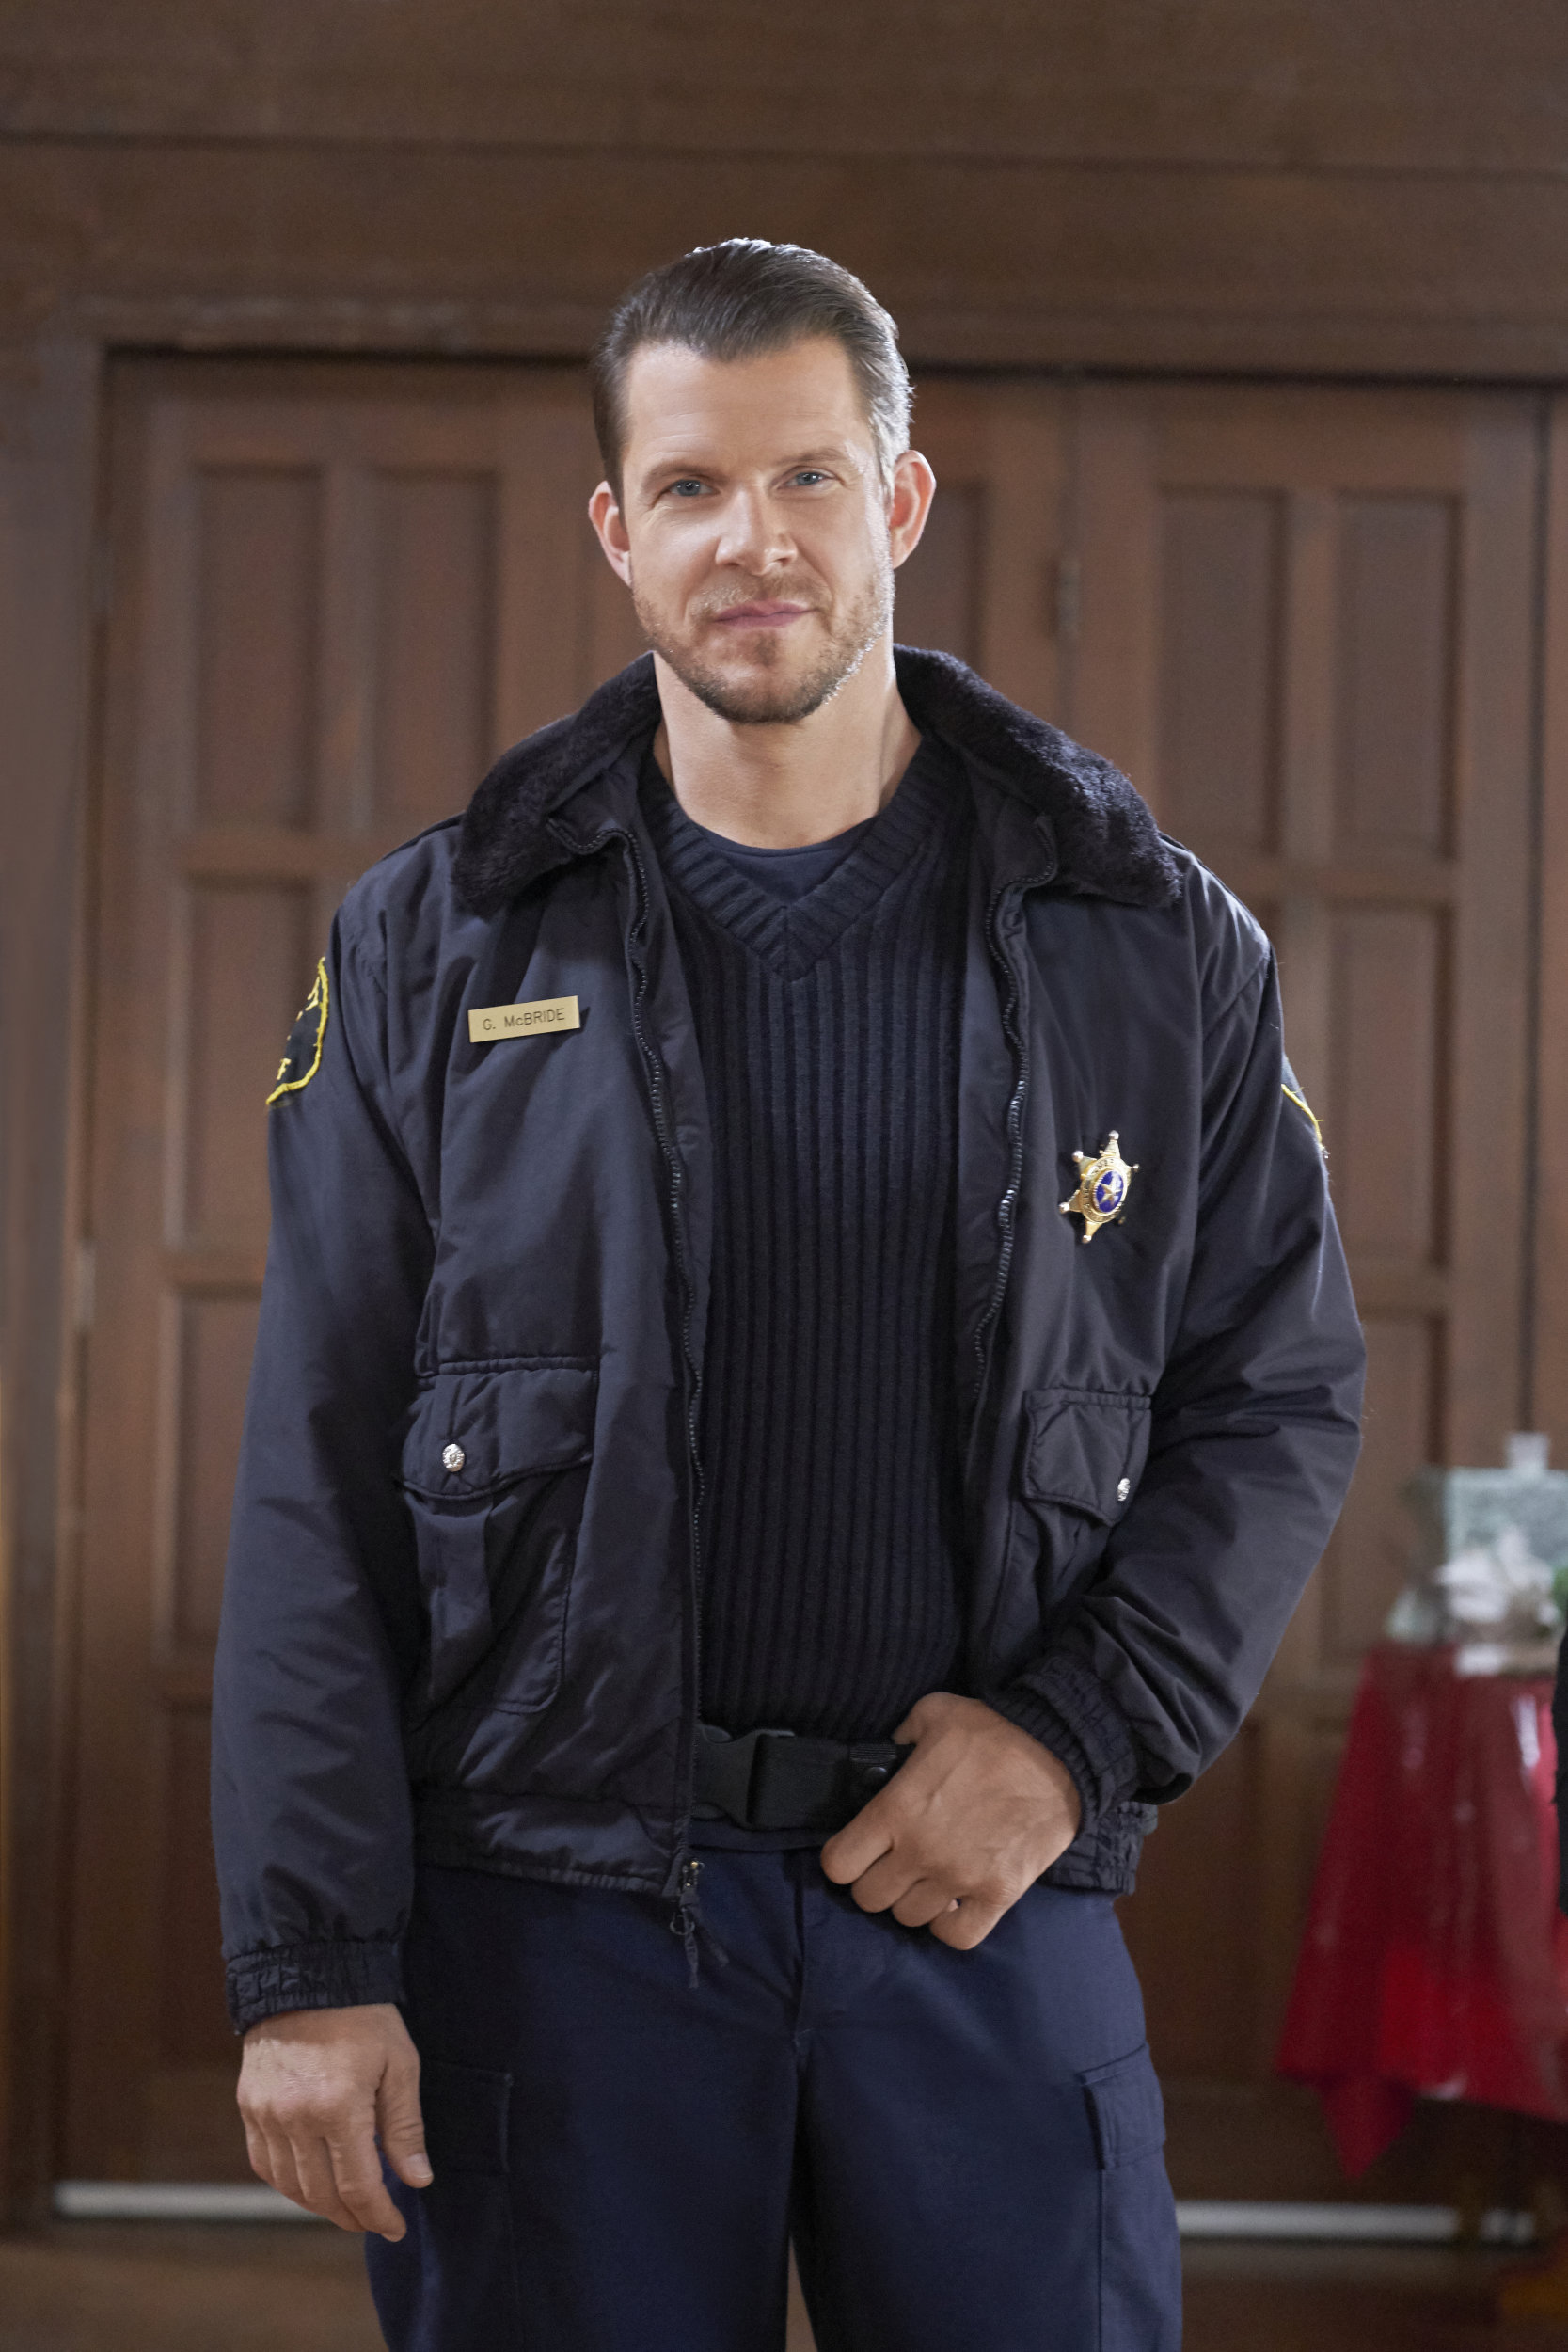 Welcome To Christmas.Eric Mabius As Gage On Welcome To Christmas Hallmark Channel